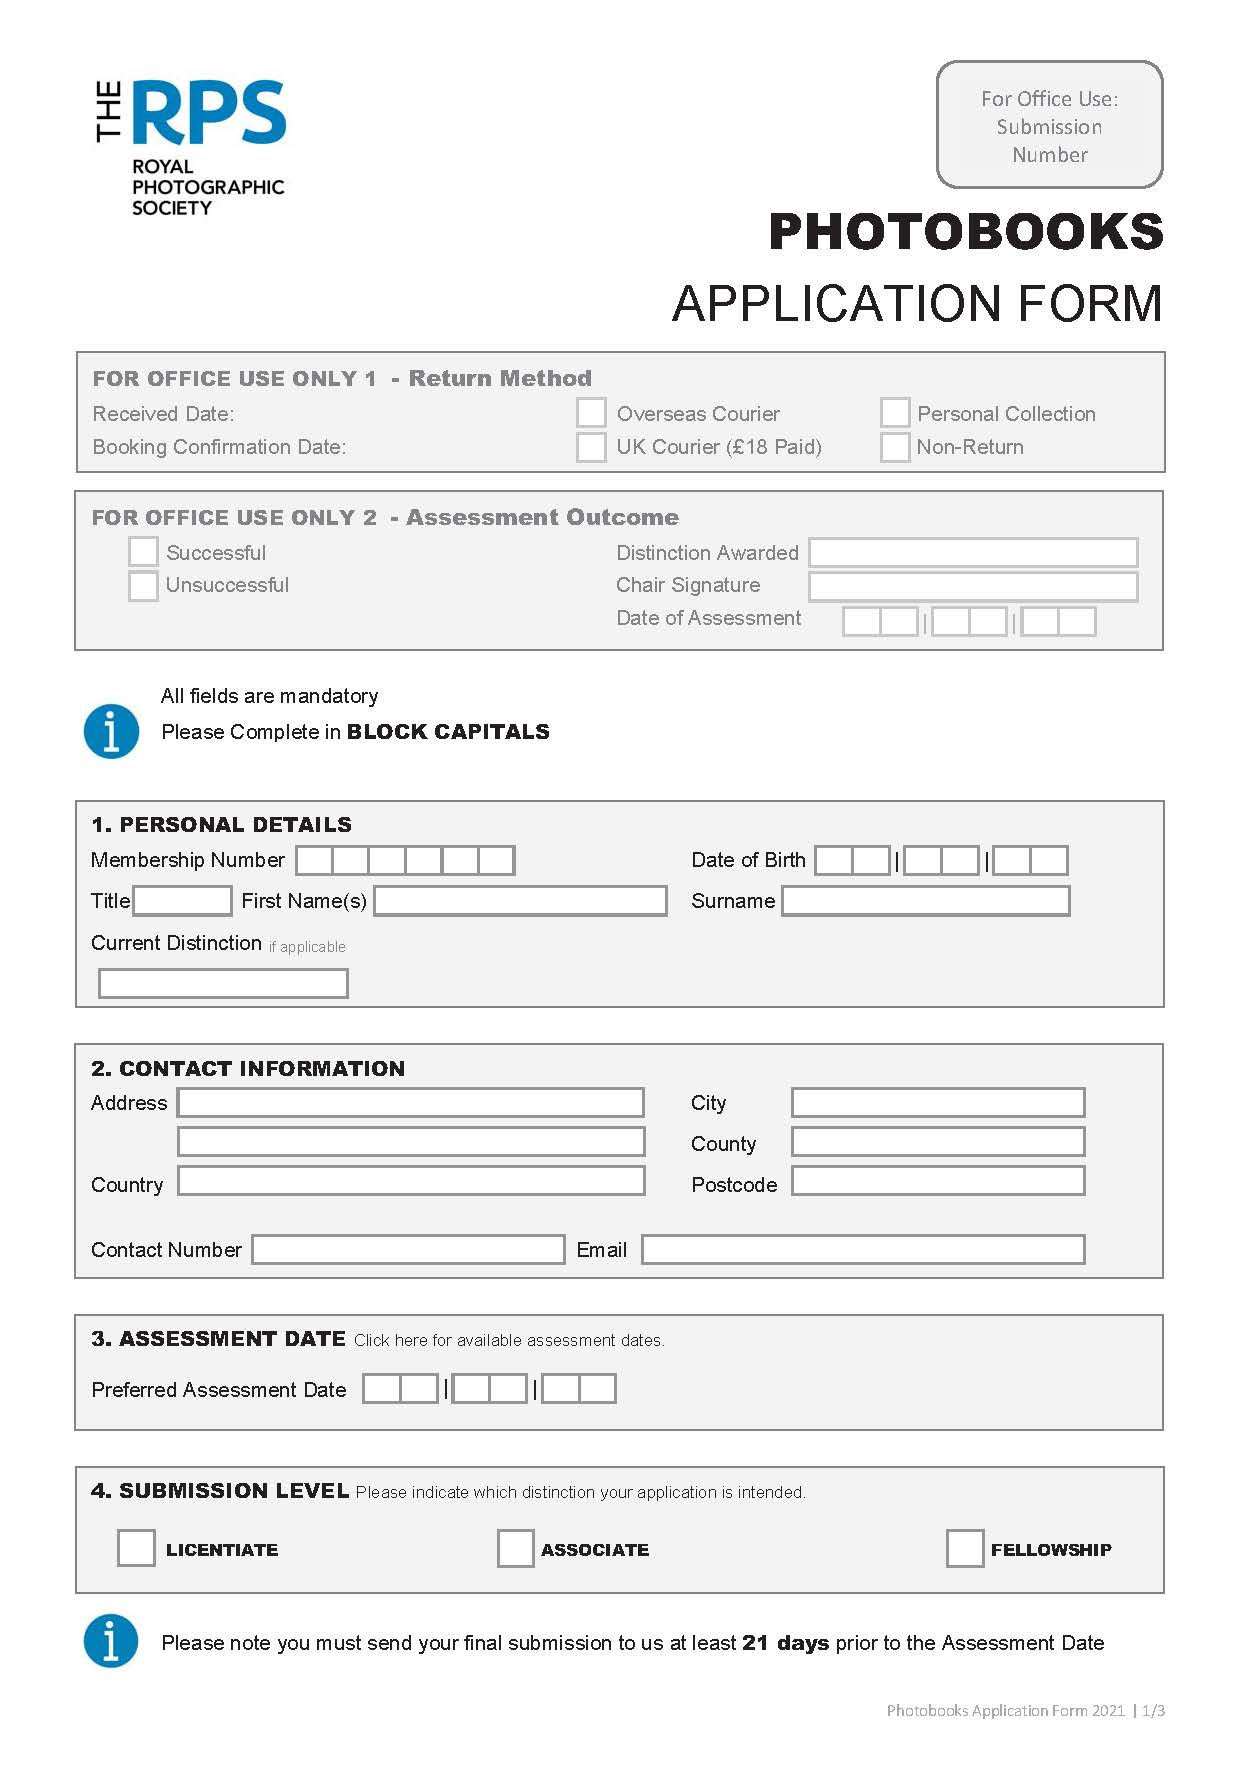 2021 Photo Books Application Form DRAFT Page 1